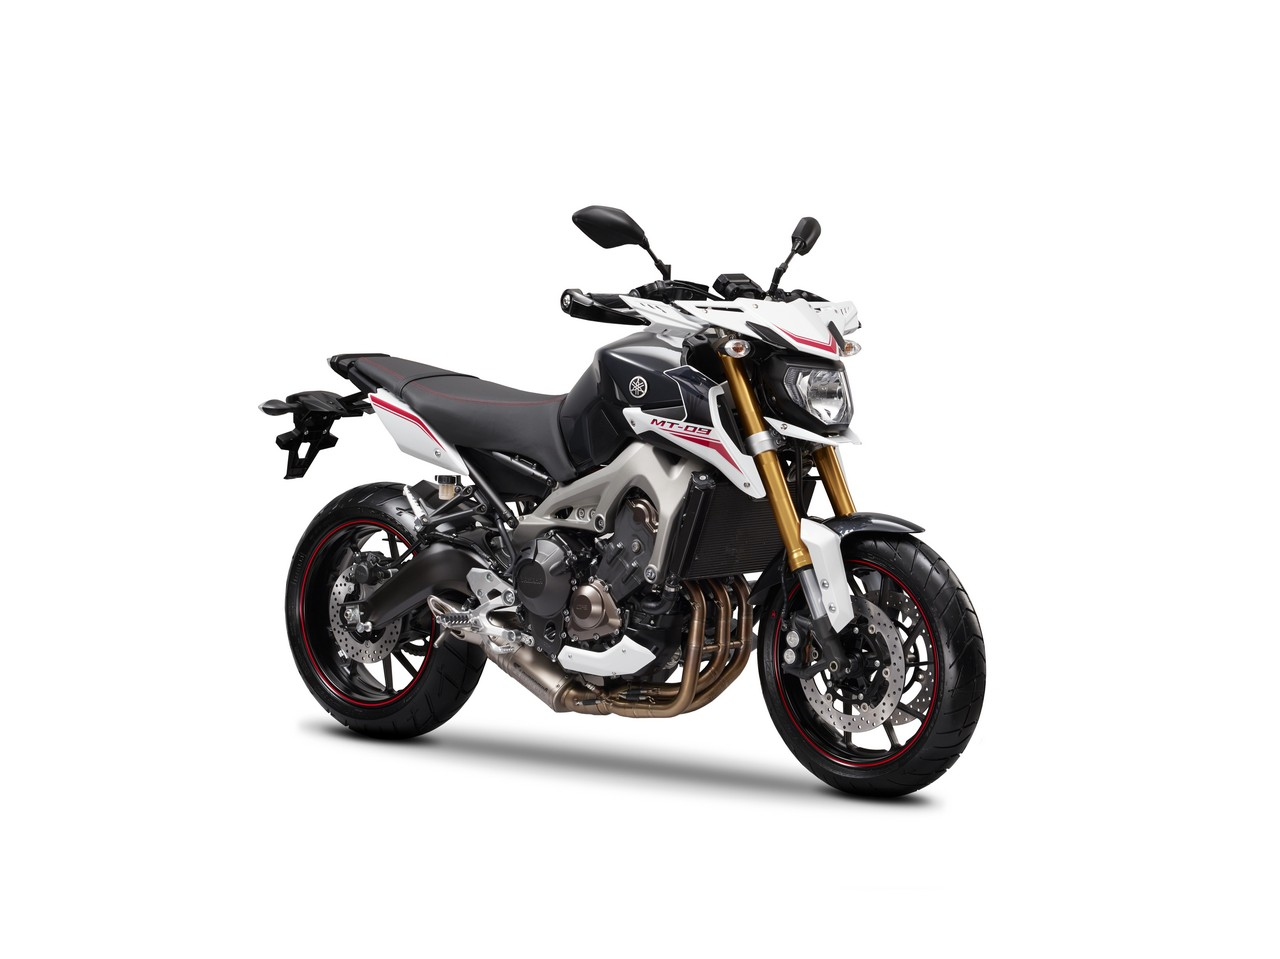 YAMAHA MT-09 STREET RALLY PARTS